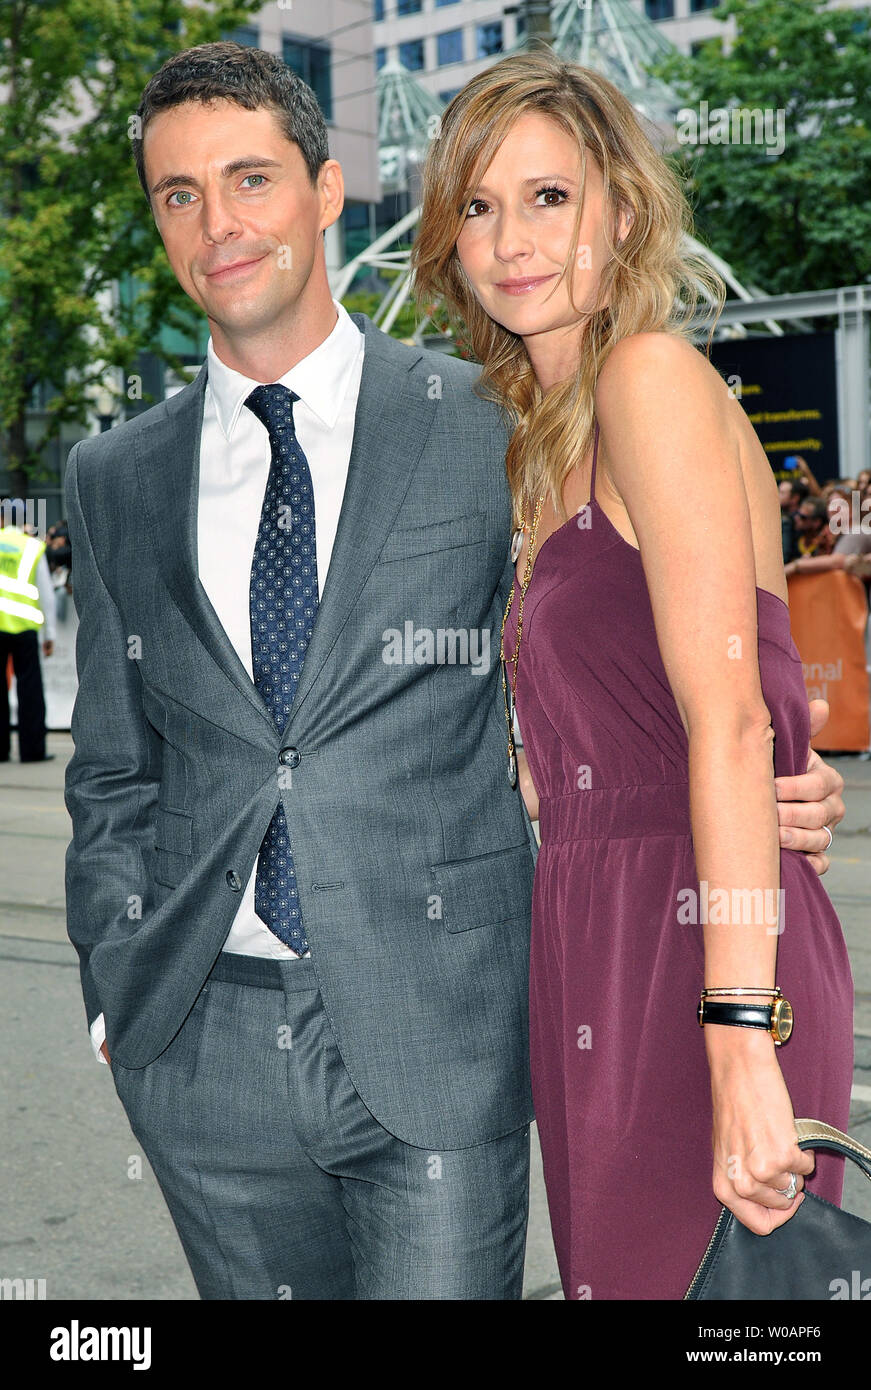 Matthew Goode And His Wife Sophie Dymoke Arrive At The Toronto International Film Festival Premiere Of The Imitation Game At The Princess Of Wales Theatre In Toronto Canada On September 10 2014 Born in 1982, matthew goode's wife, sophie dymoke hails from the tunbridge wells hometown with her nationality being england. https www alamy com matthew goode and his wife sophie dymoke arrive at the toronto international film festival premiere of the imitation game at the princess of wales theatre in toronto canada on september 10 2014 upichristine chew image258392714 html